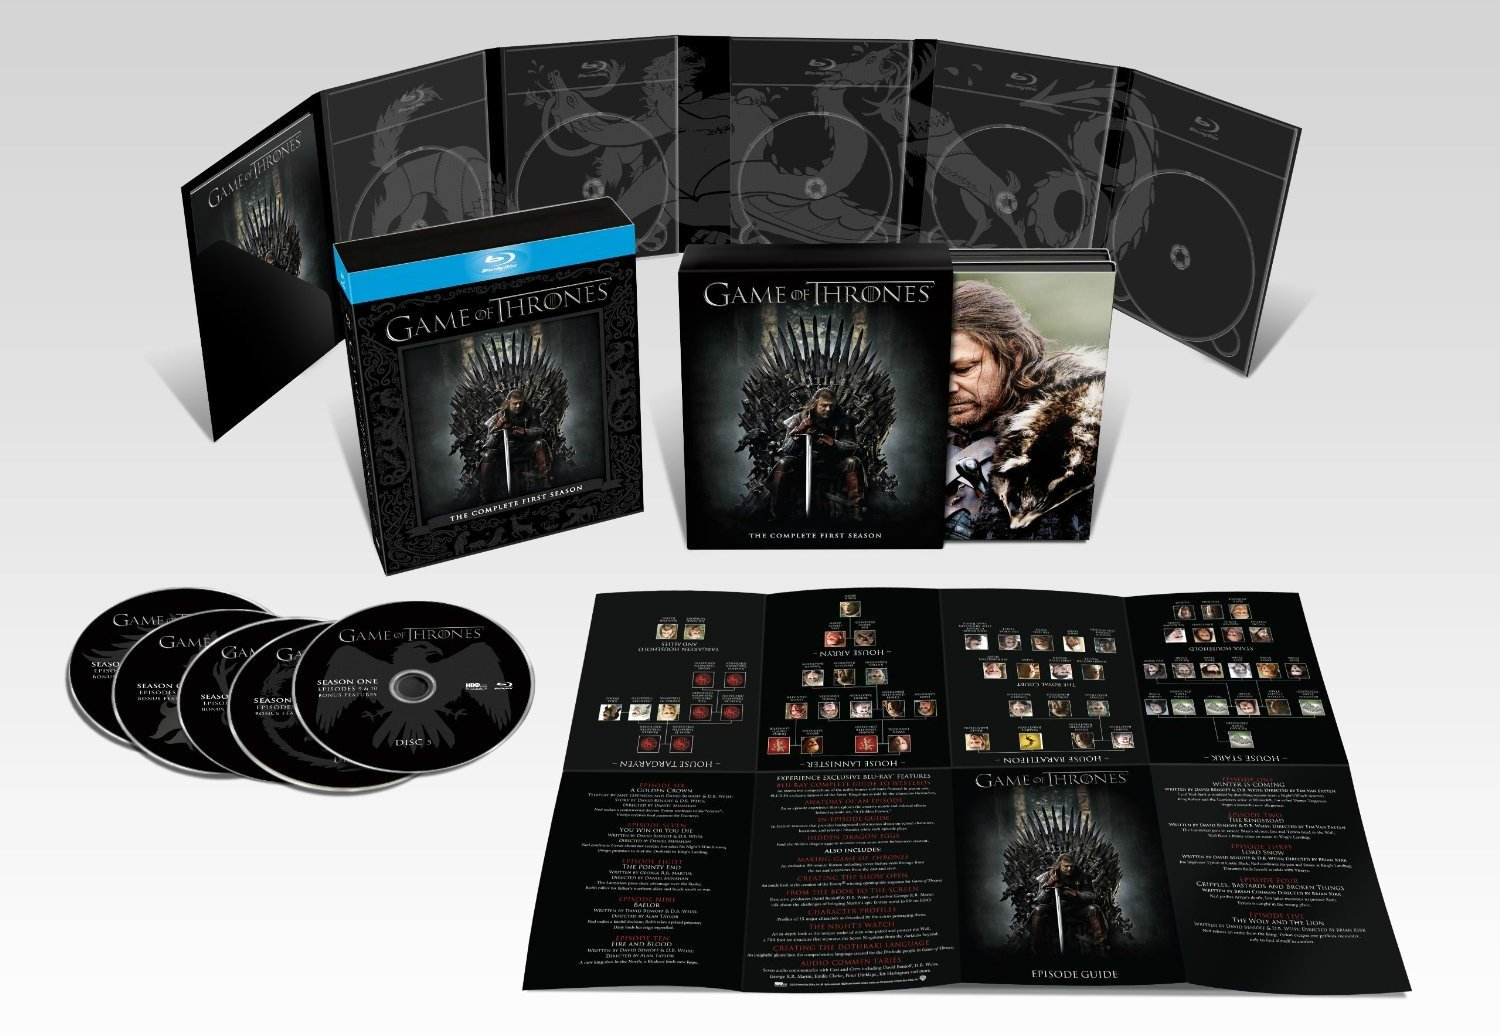 BLU-RAY REVIEW – 'Game of Thrones: Season One'